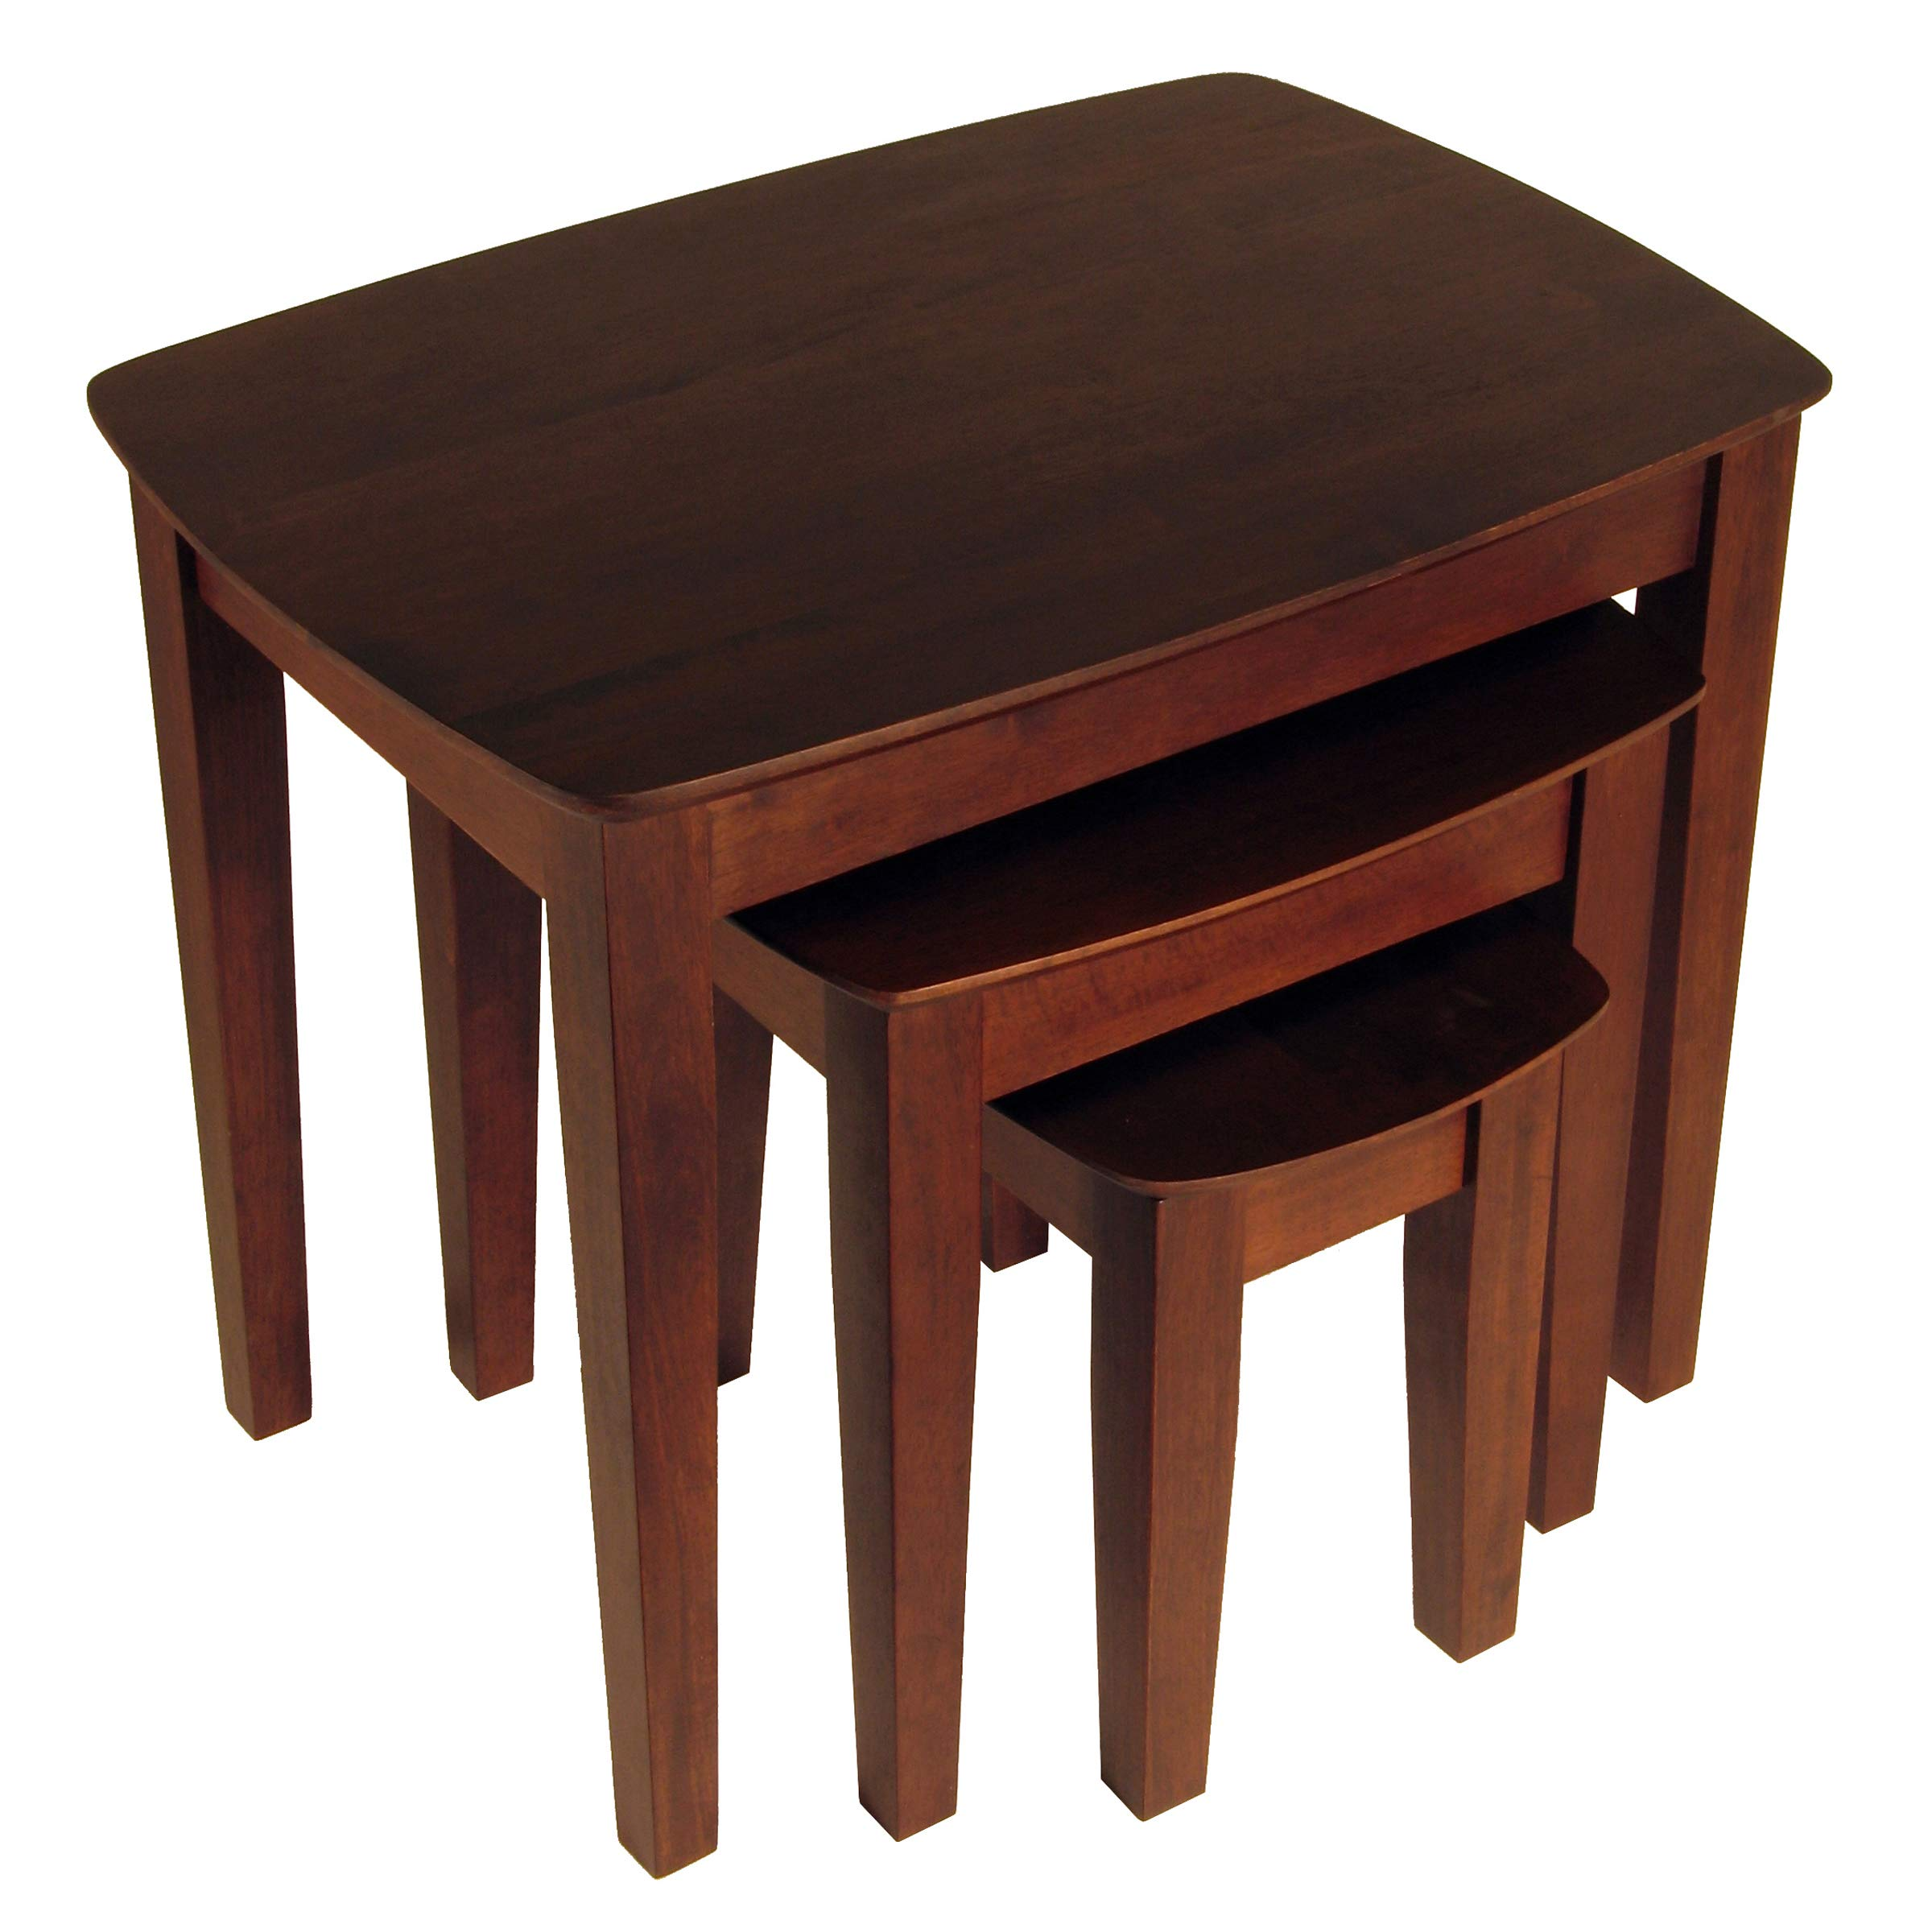 Winsome Wood 94327 Bradley Accent Table, Antique Walnut by Winsome Wood